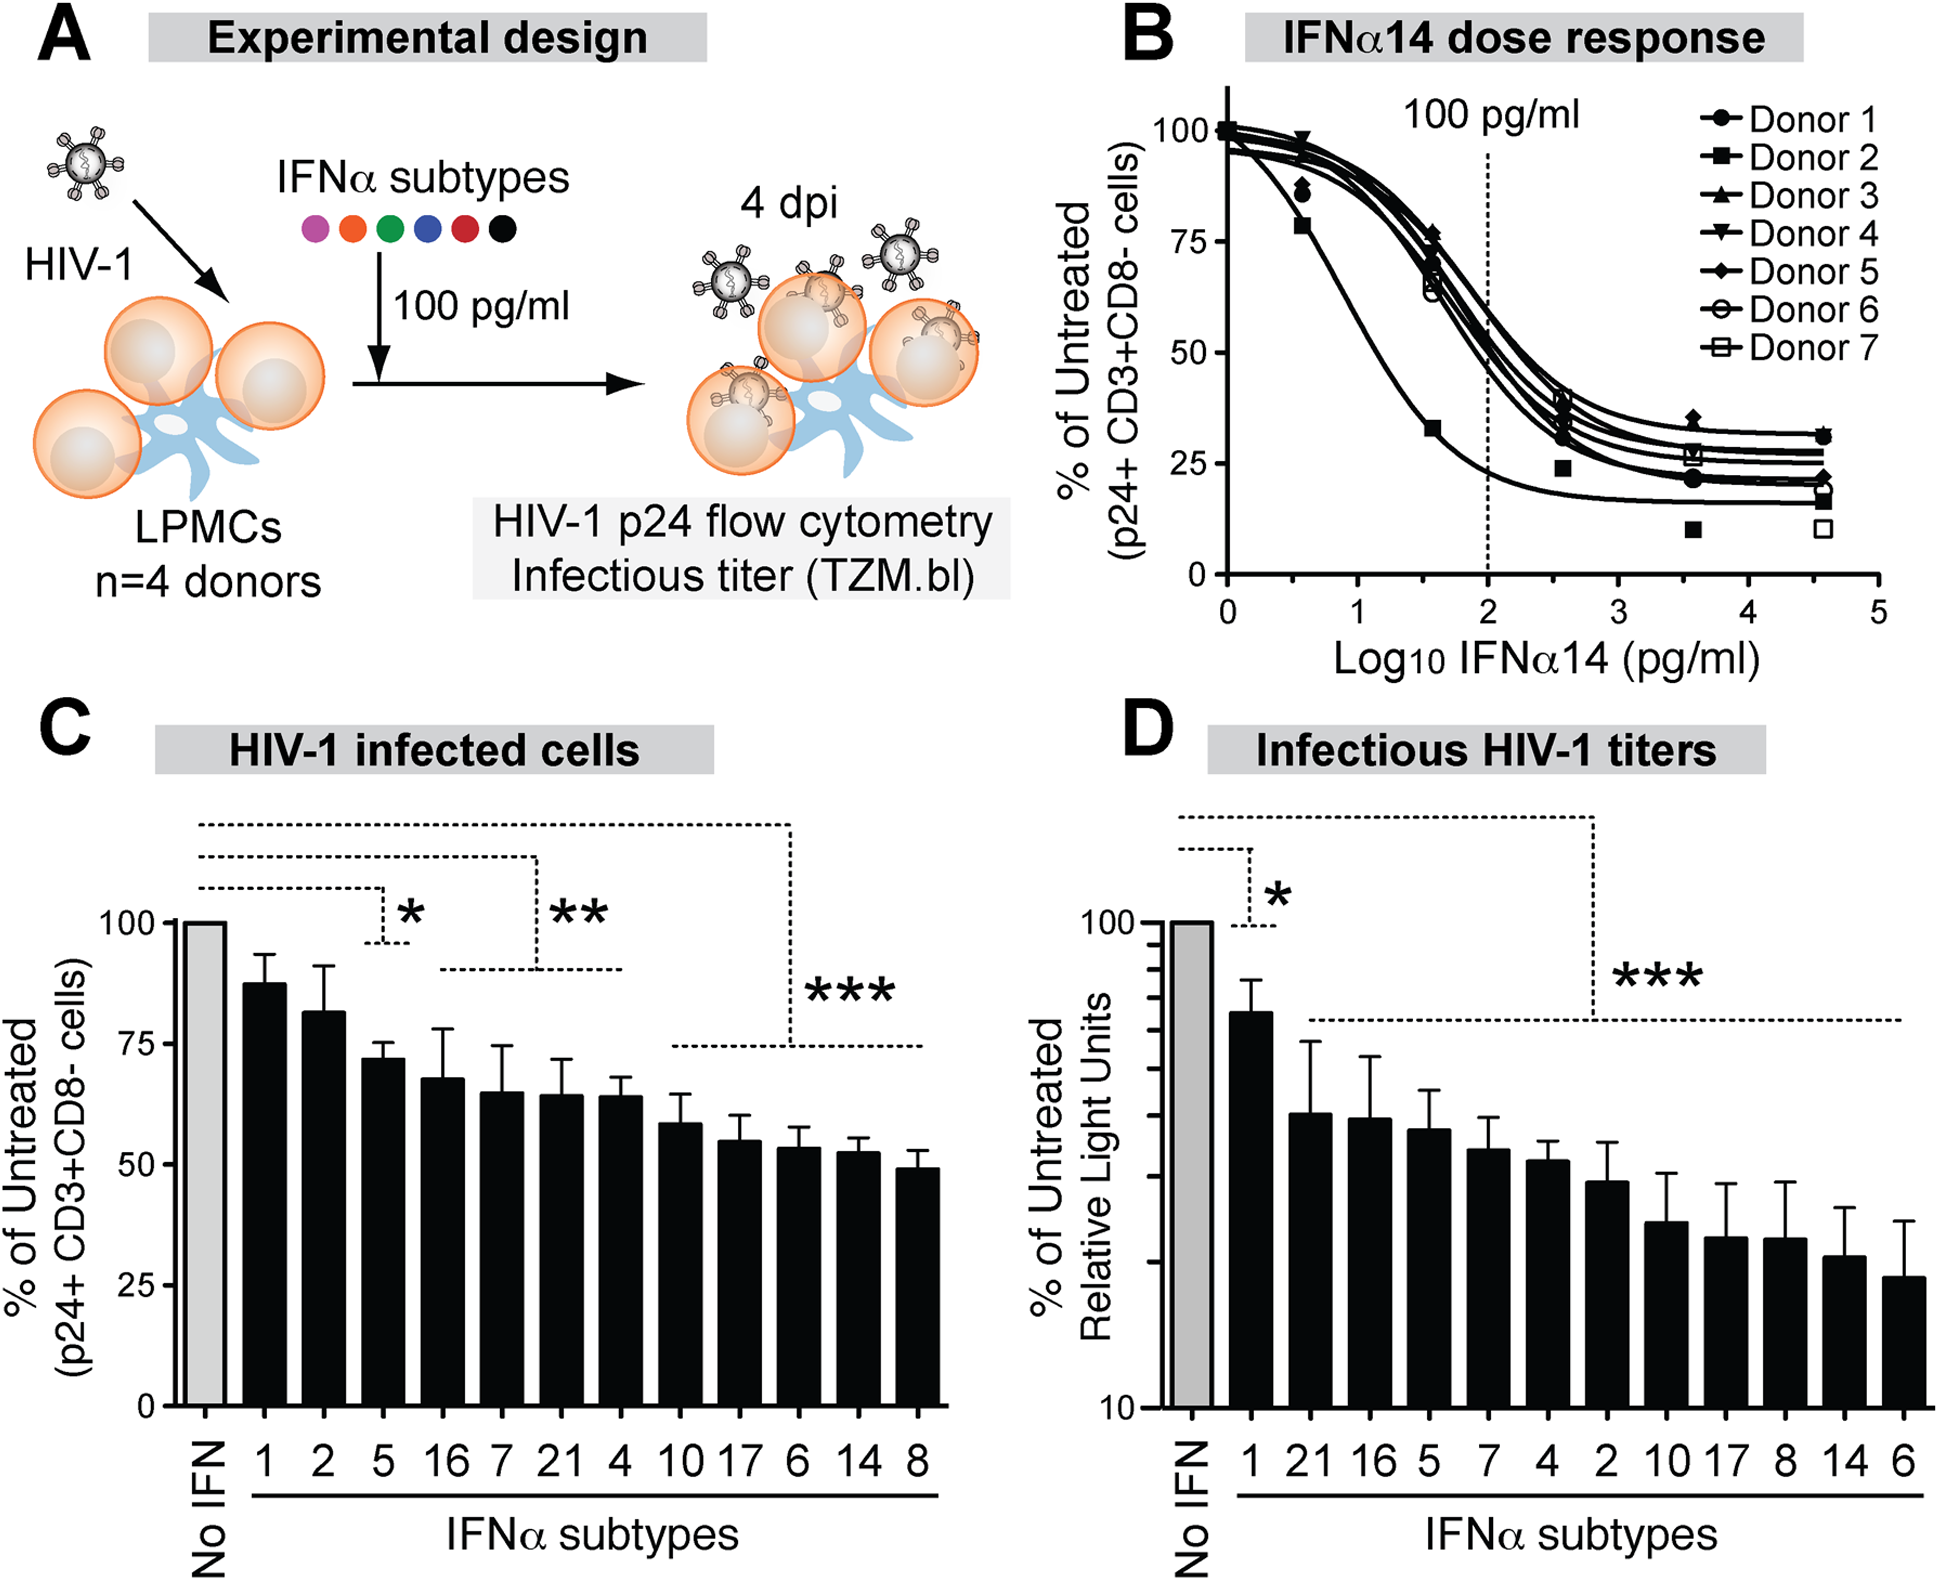 Inhibition of HIV-1 by 12 IFNα subtypes in the LPAC model.